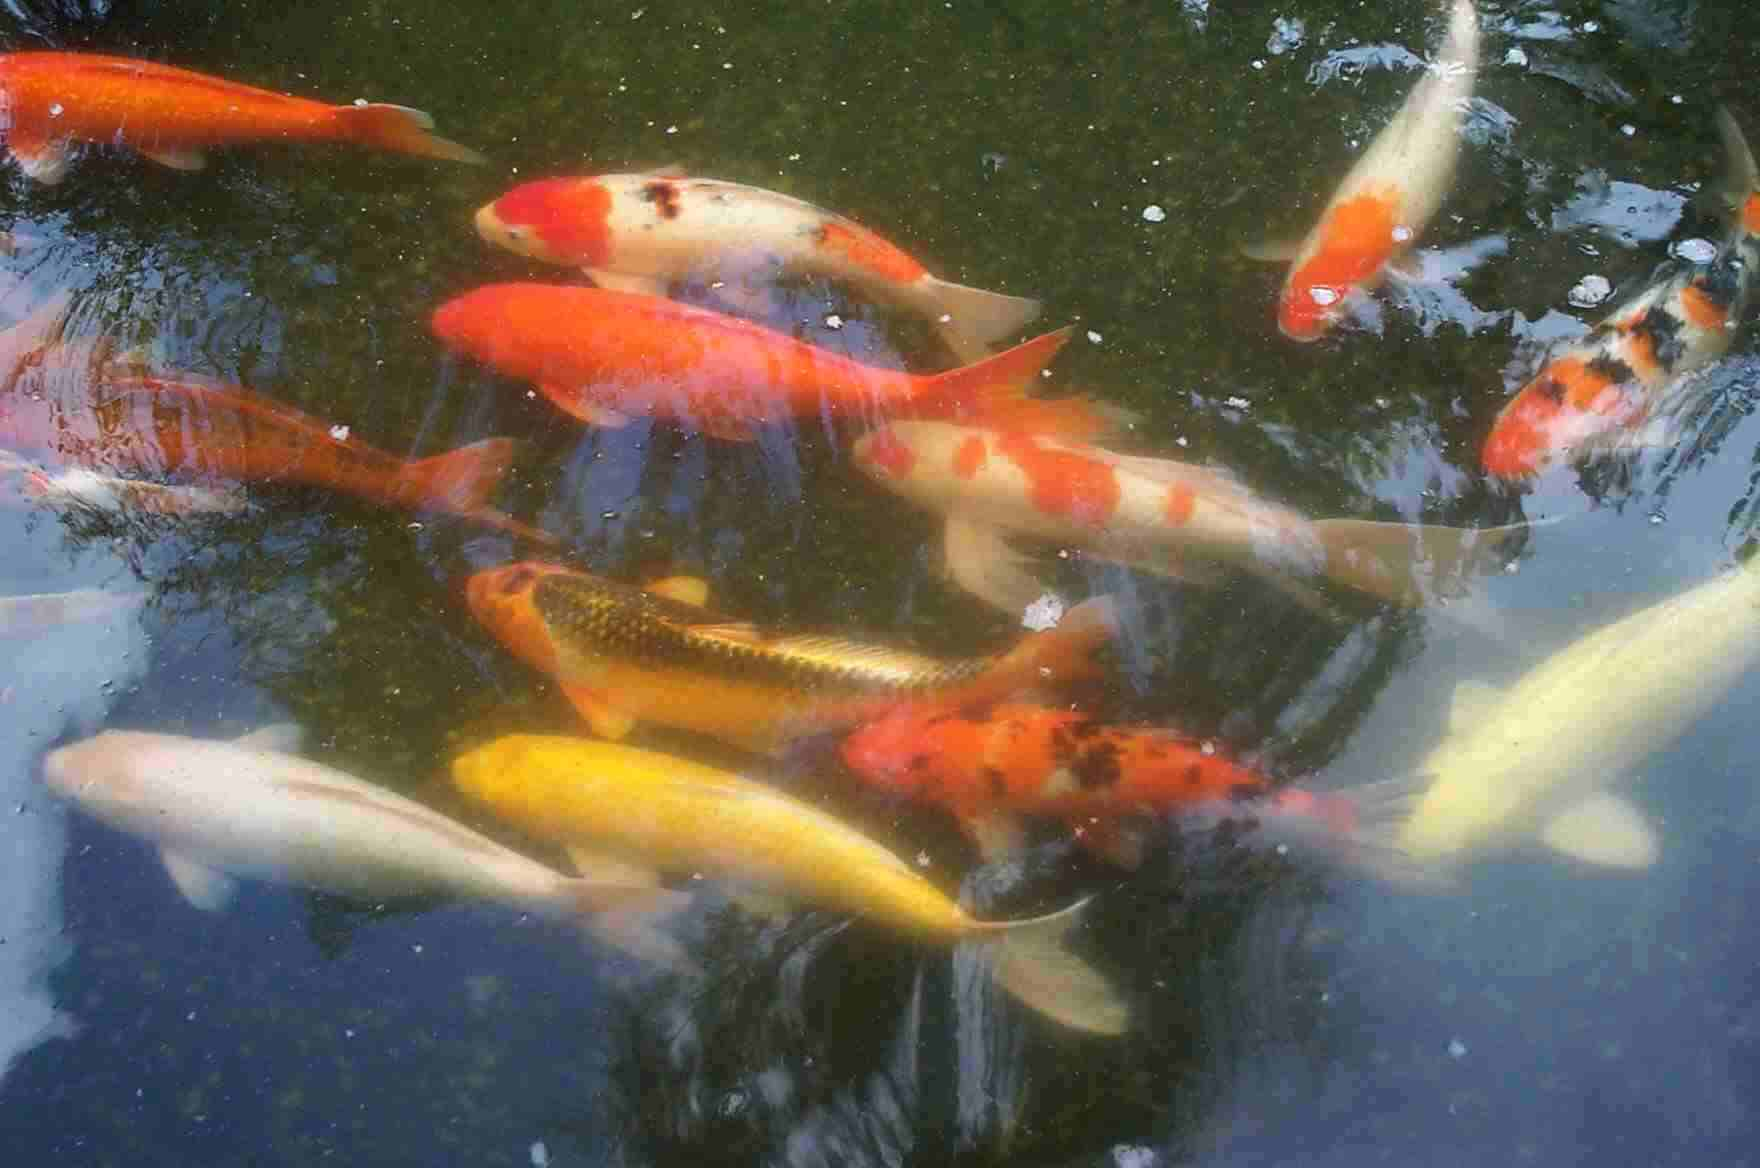 Discus fish for sale 8 amazing giant koi fish for sale Koi carp food for sale